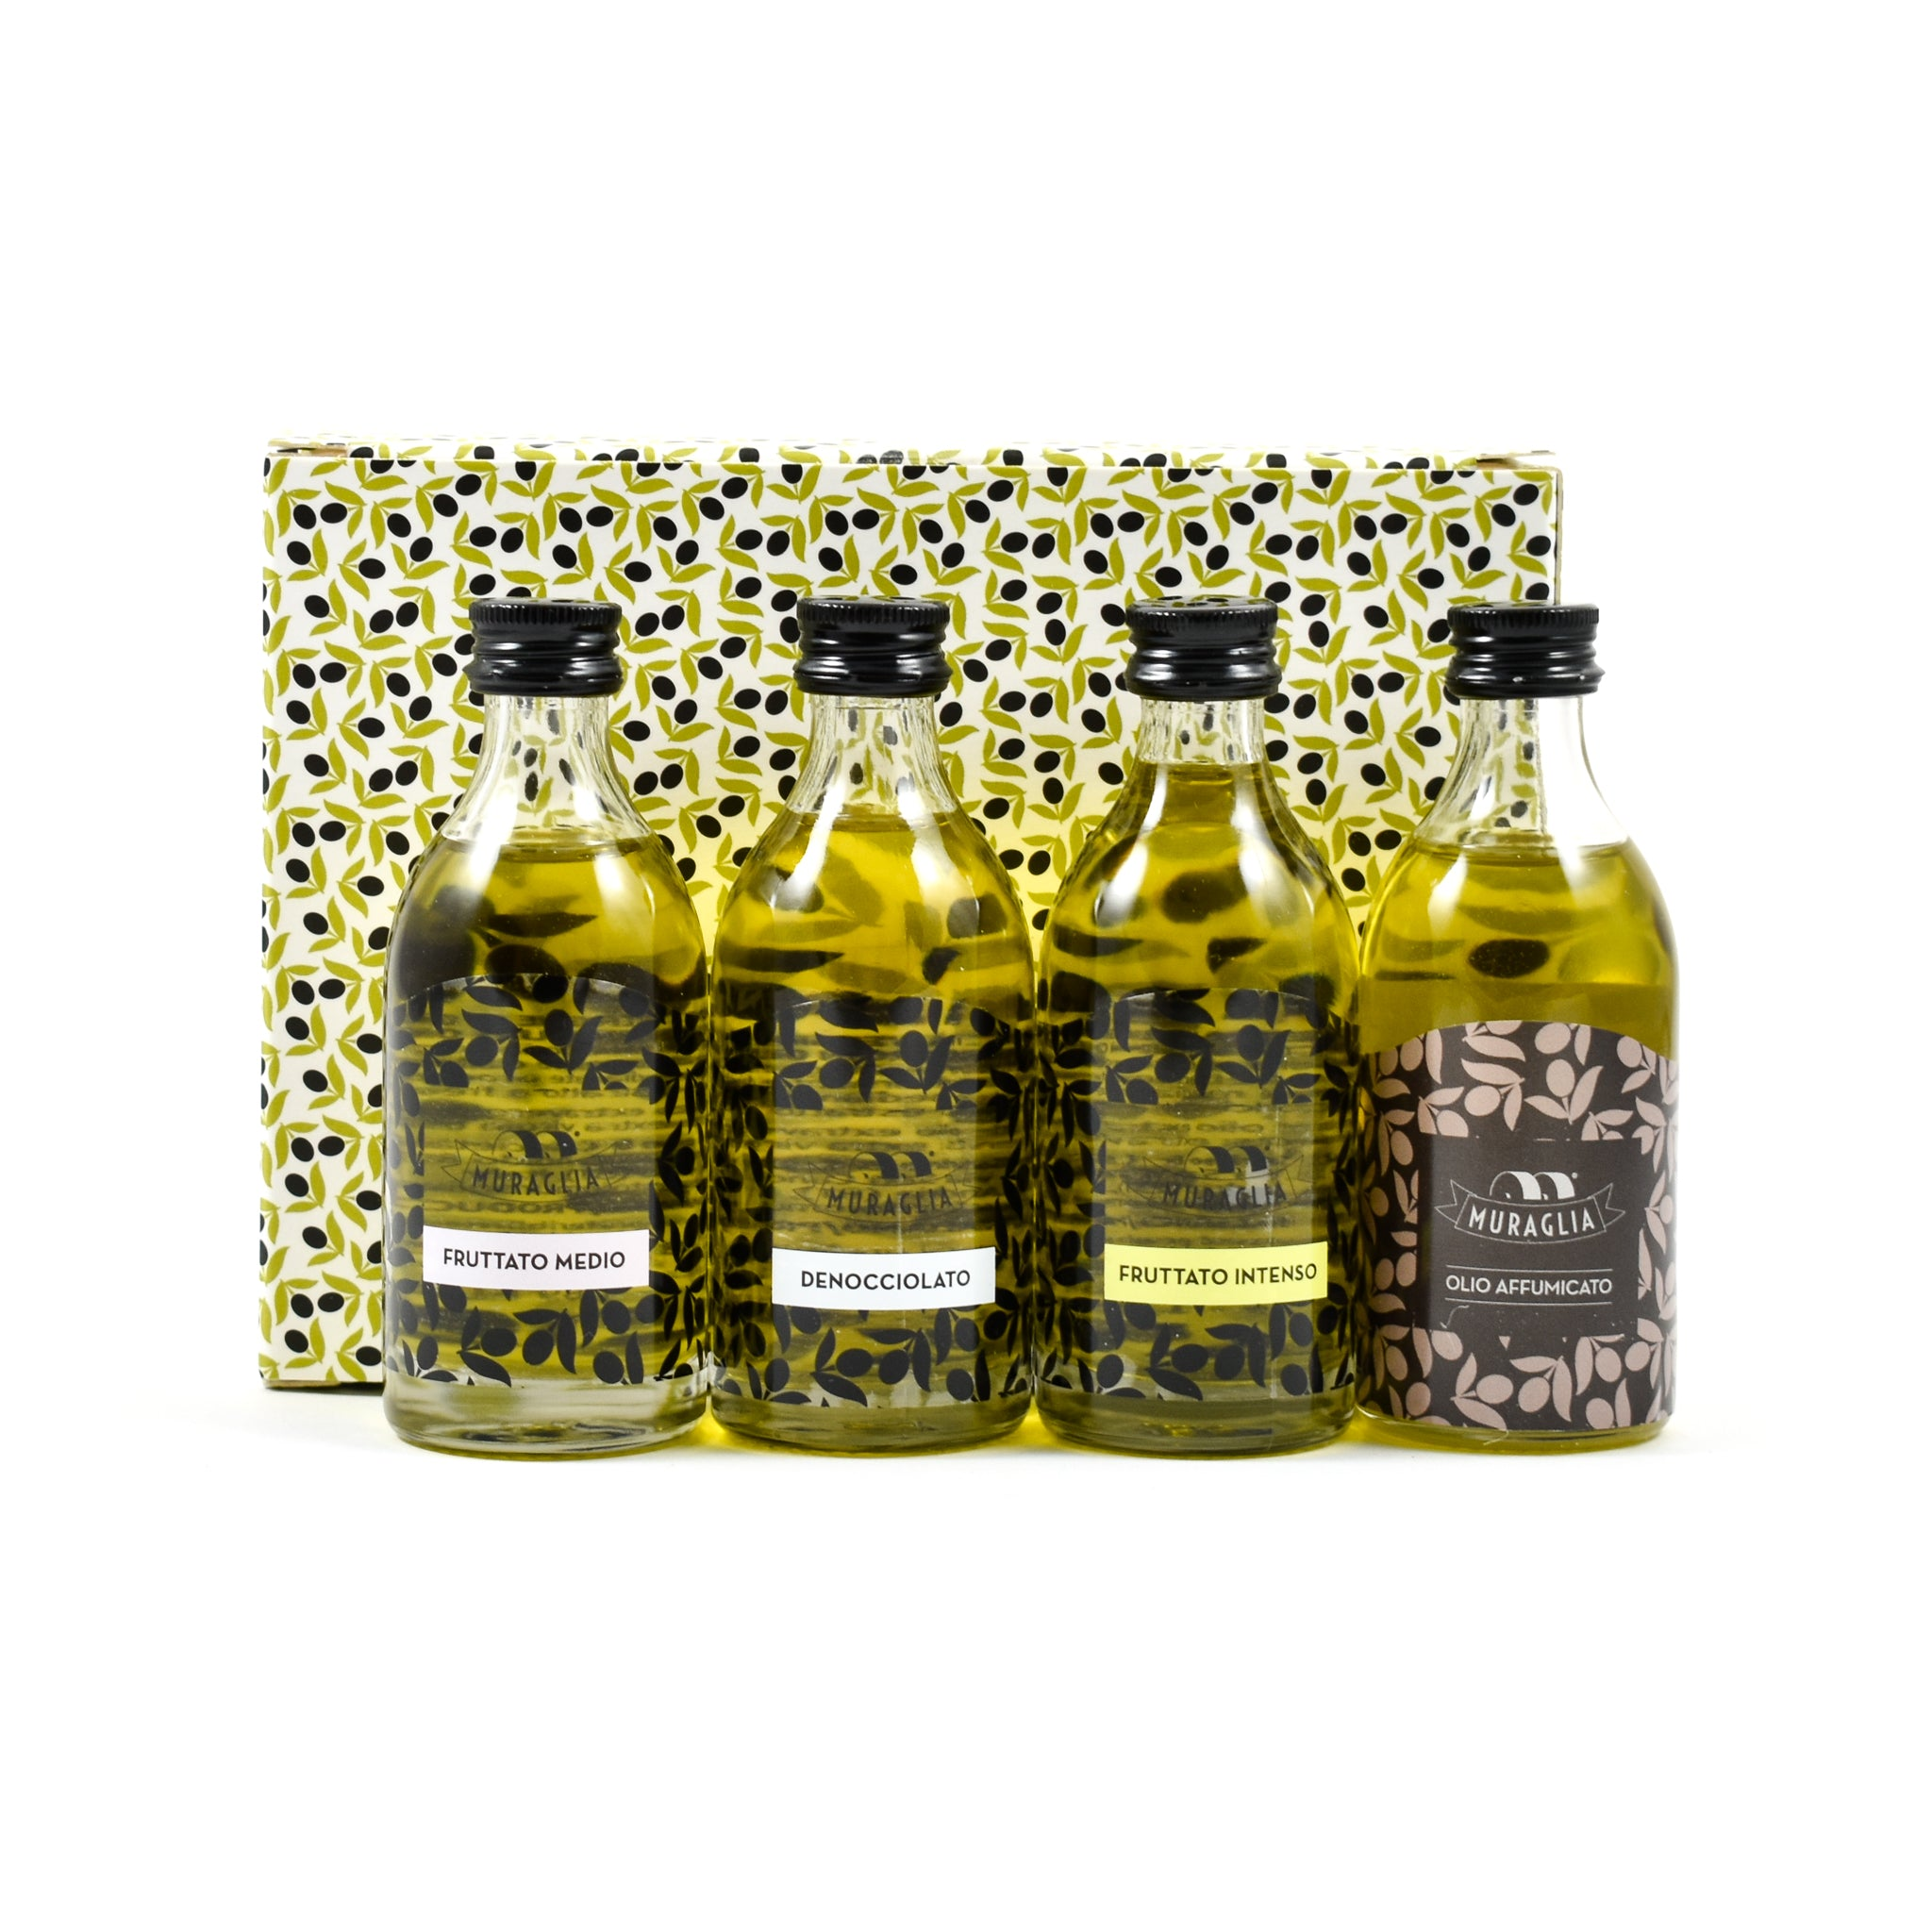 Frantoio Muraglia Extra Virgin Olive Oil Selection 4x50ml Ingredients Oils & Vinegars Italian Food